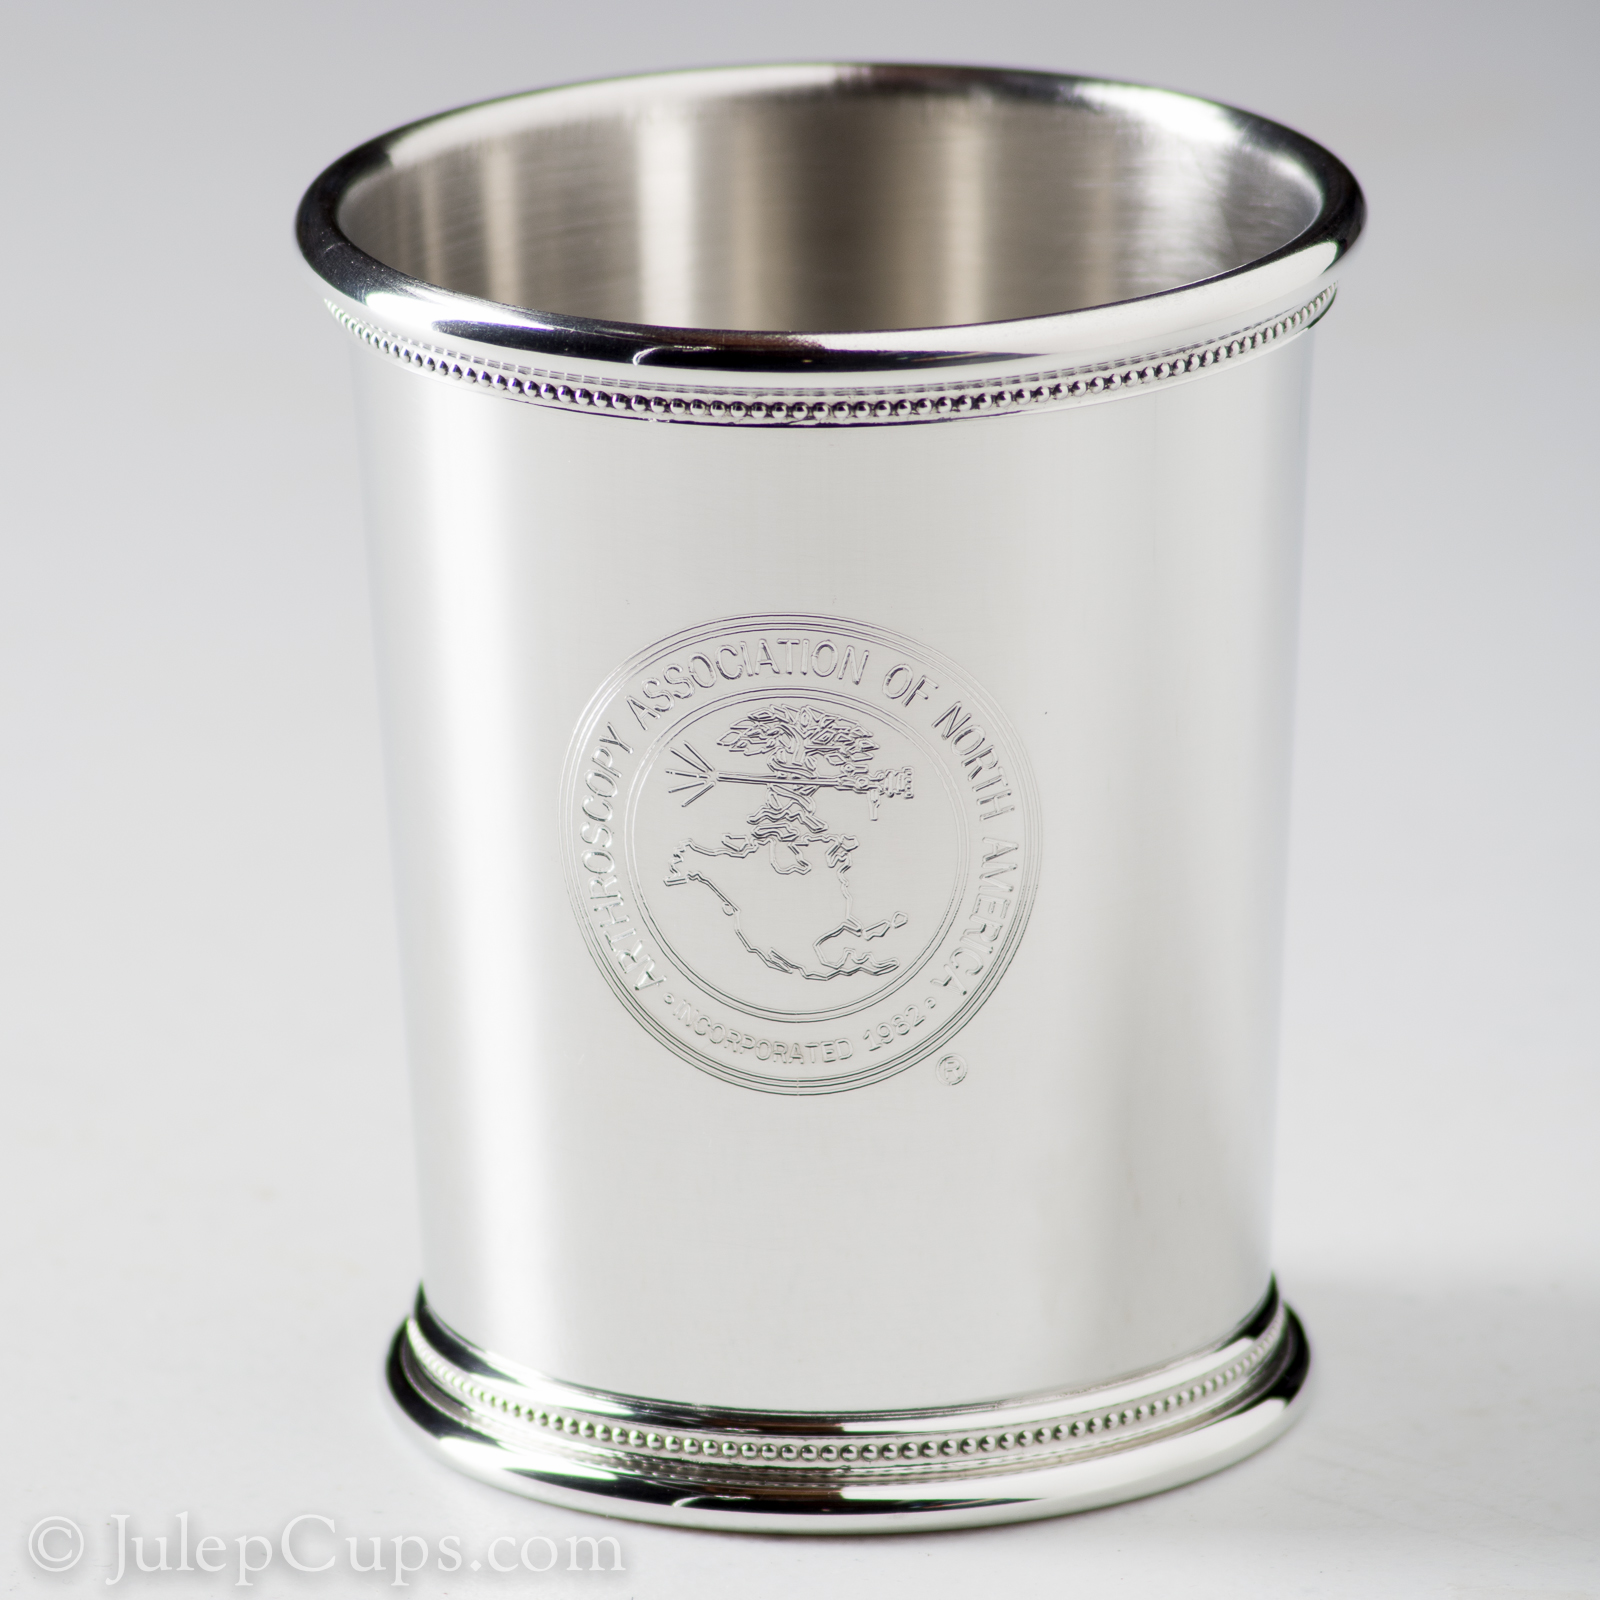 Engraving samples mint julep cups arthroscopy association of north america logo reviewsmspy